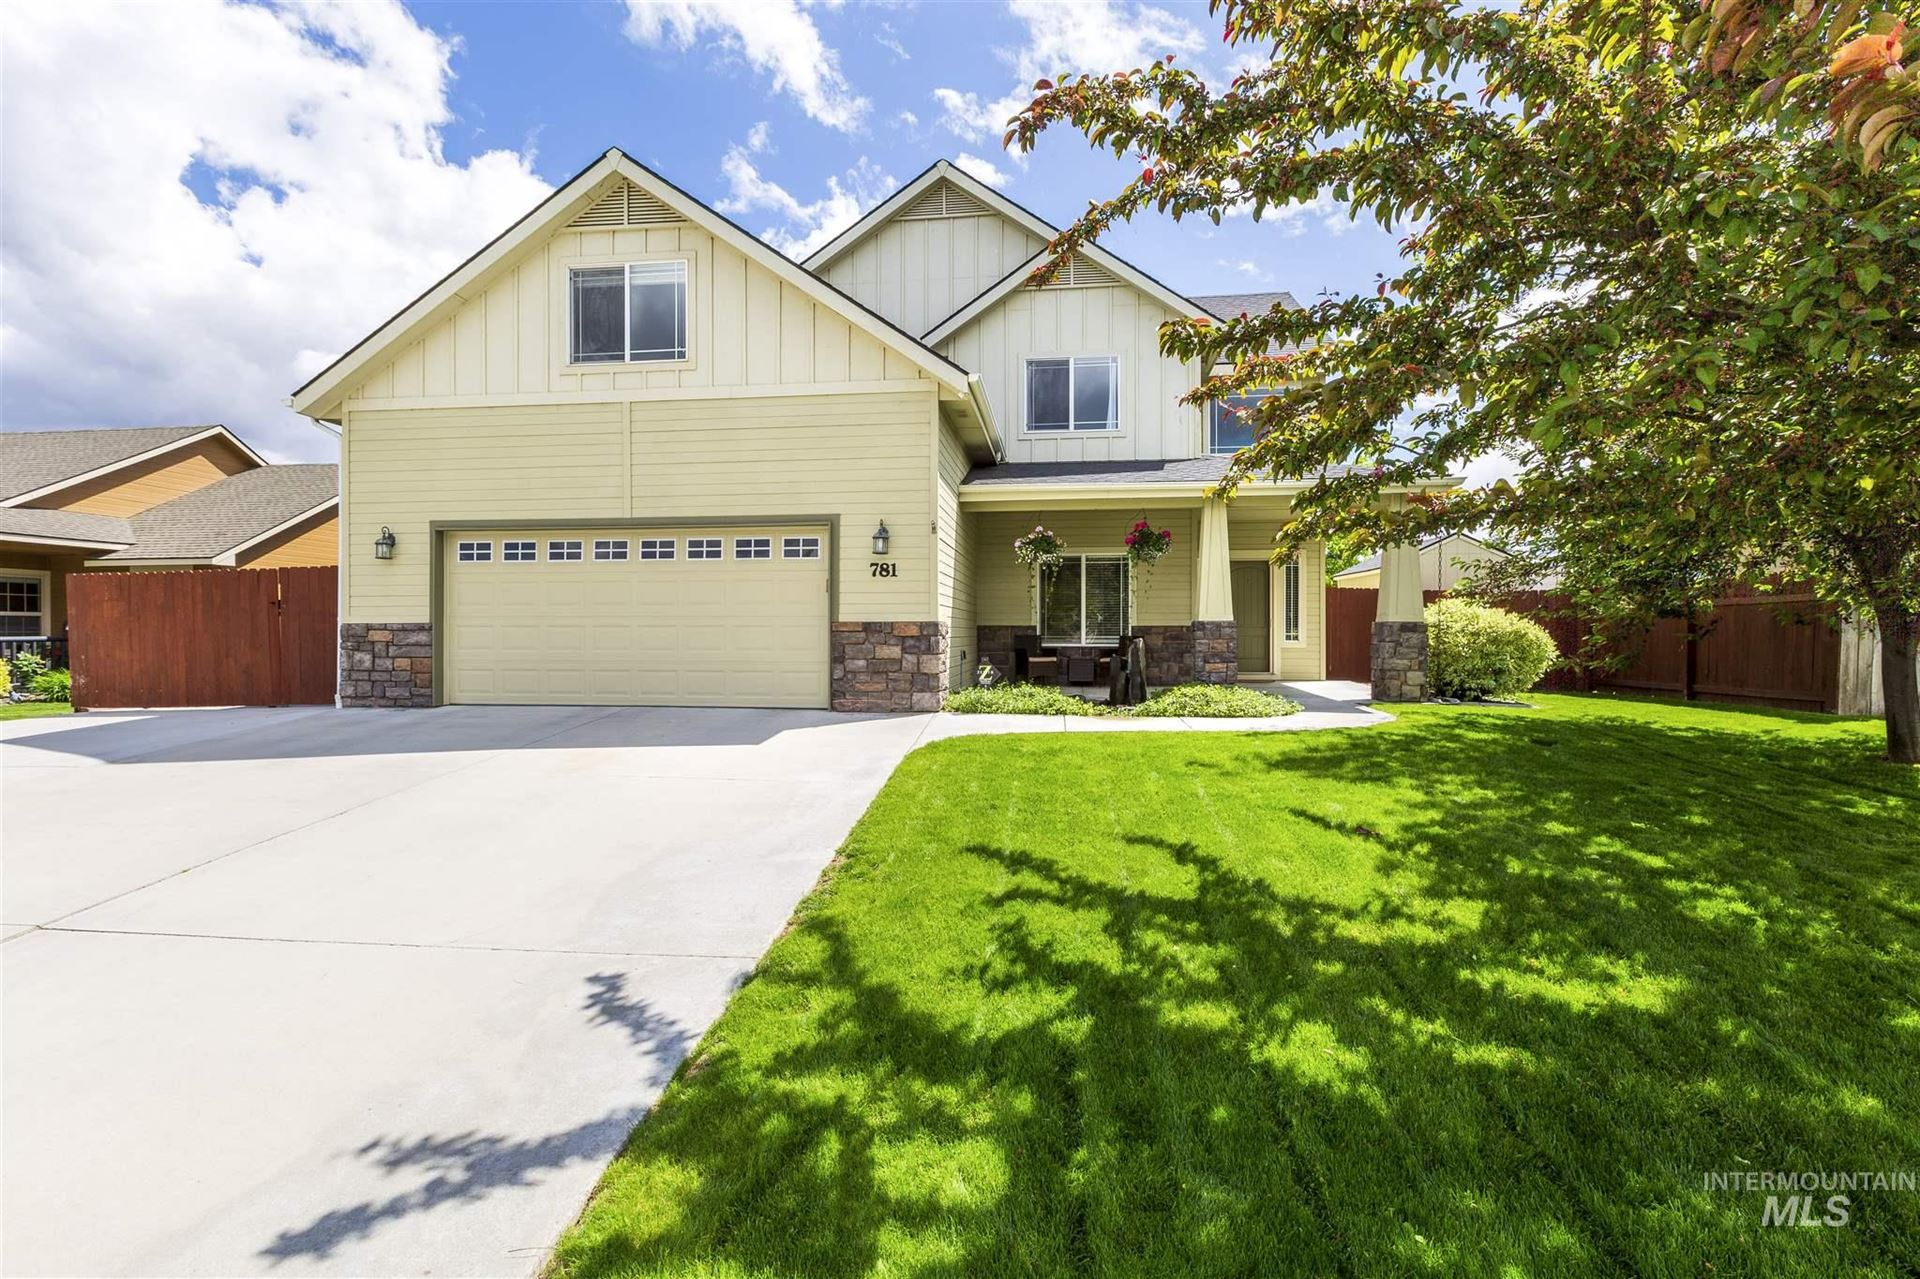 781 W Lunch Box St, Kuna, ID 83634 - MLS#: 98767611